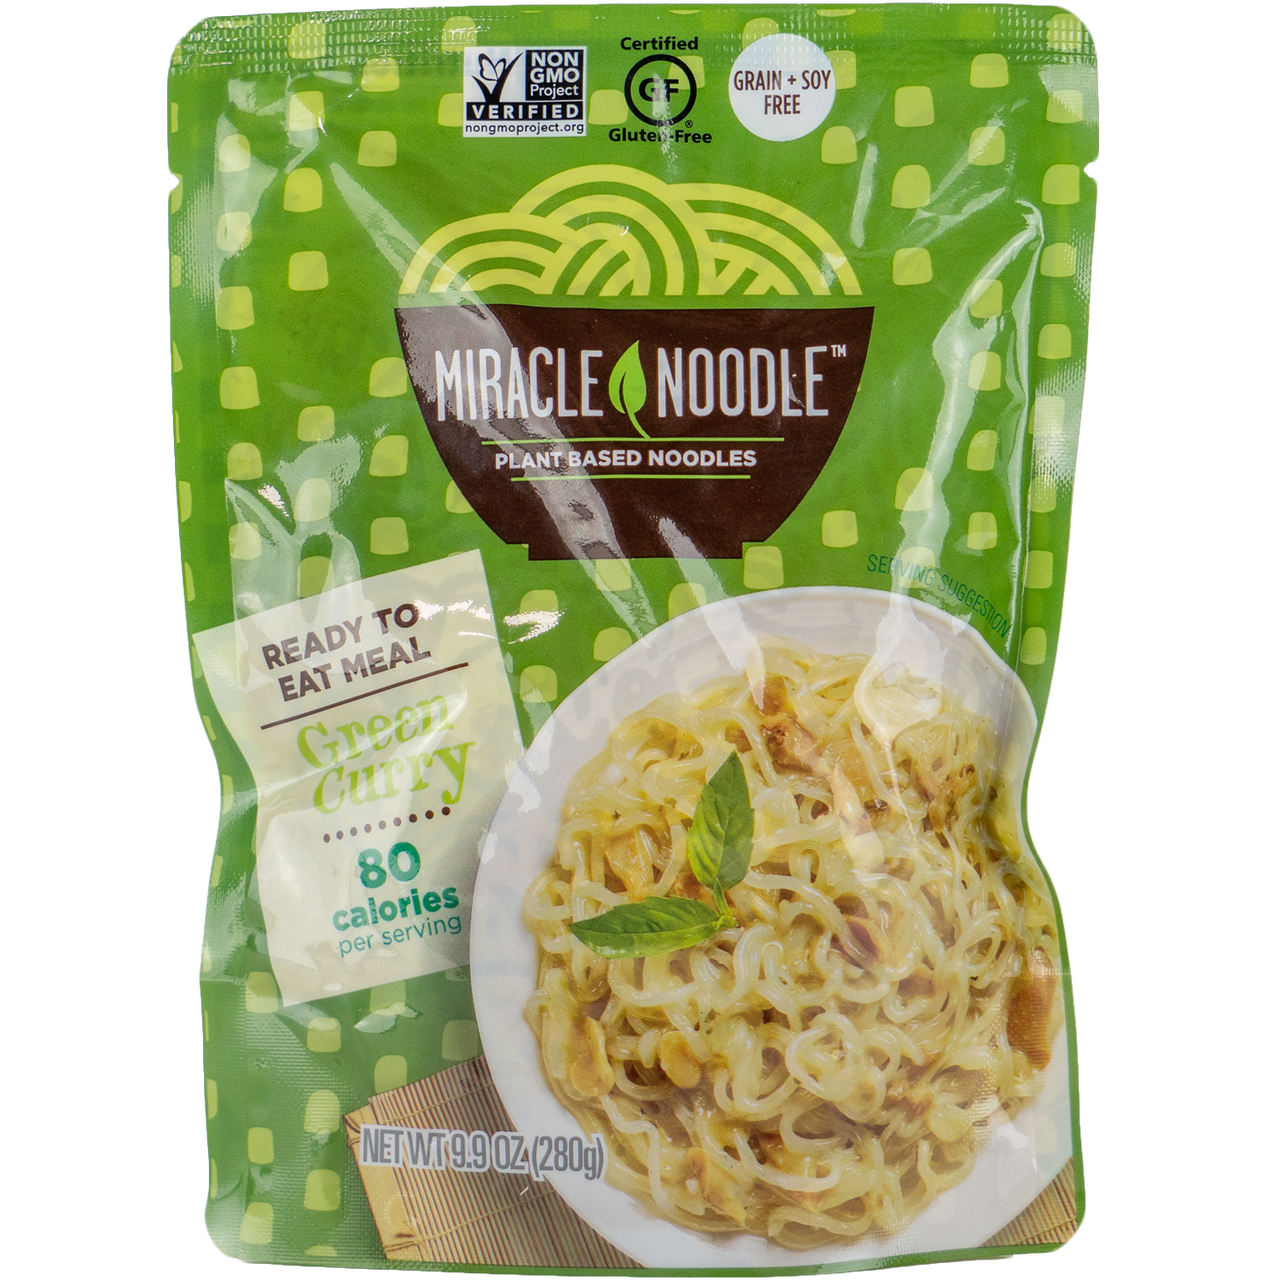 Miracle Noodle Ready-to-Eat Meals